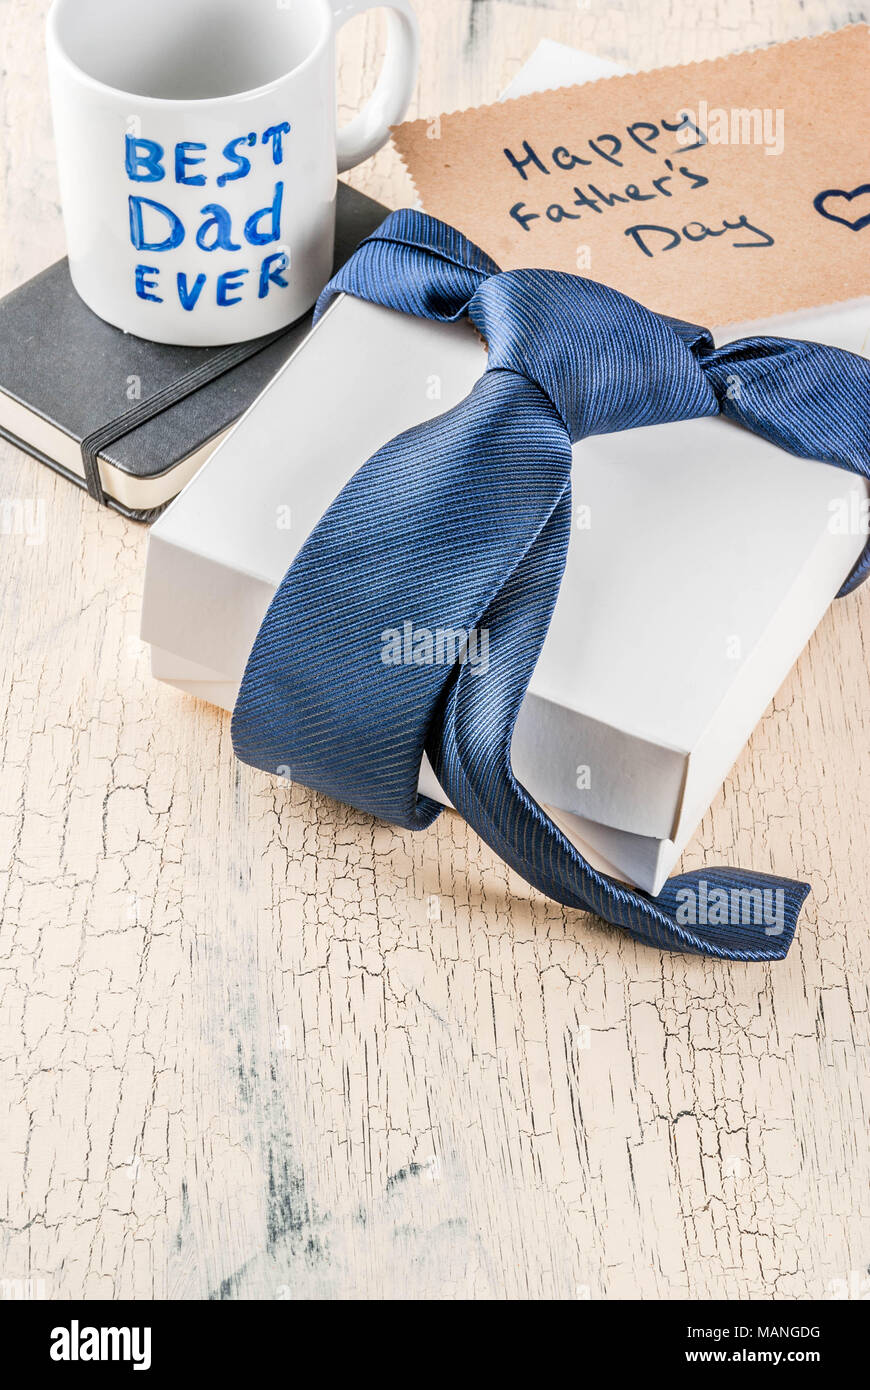 Father S Day Gift Concept Greeting Card Background Gift Box Tie Decoration Mug With Inscription Best Dad Ever Notebook Copy Space Stock Photo Alamy